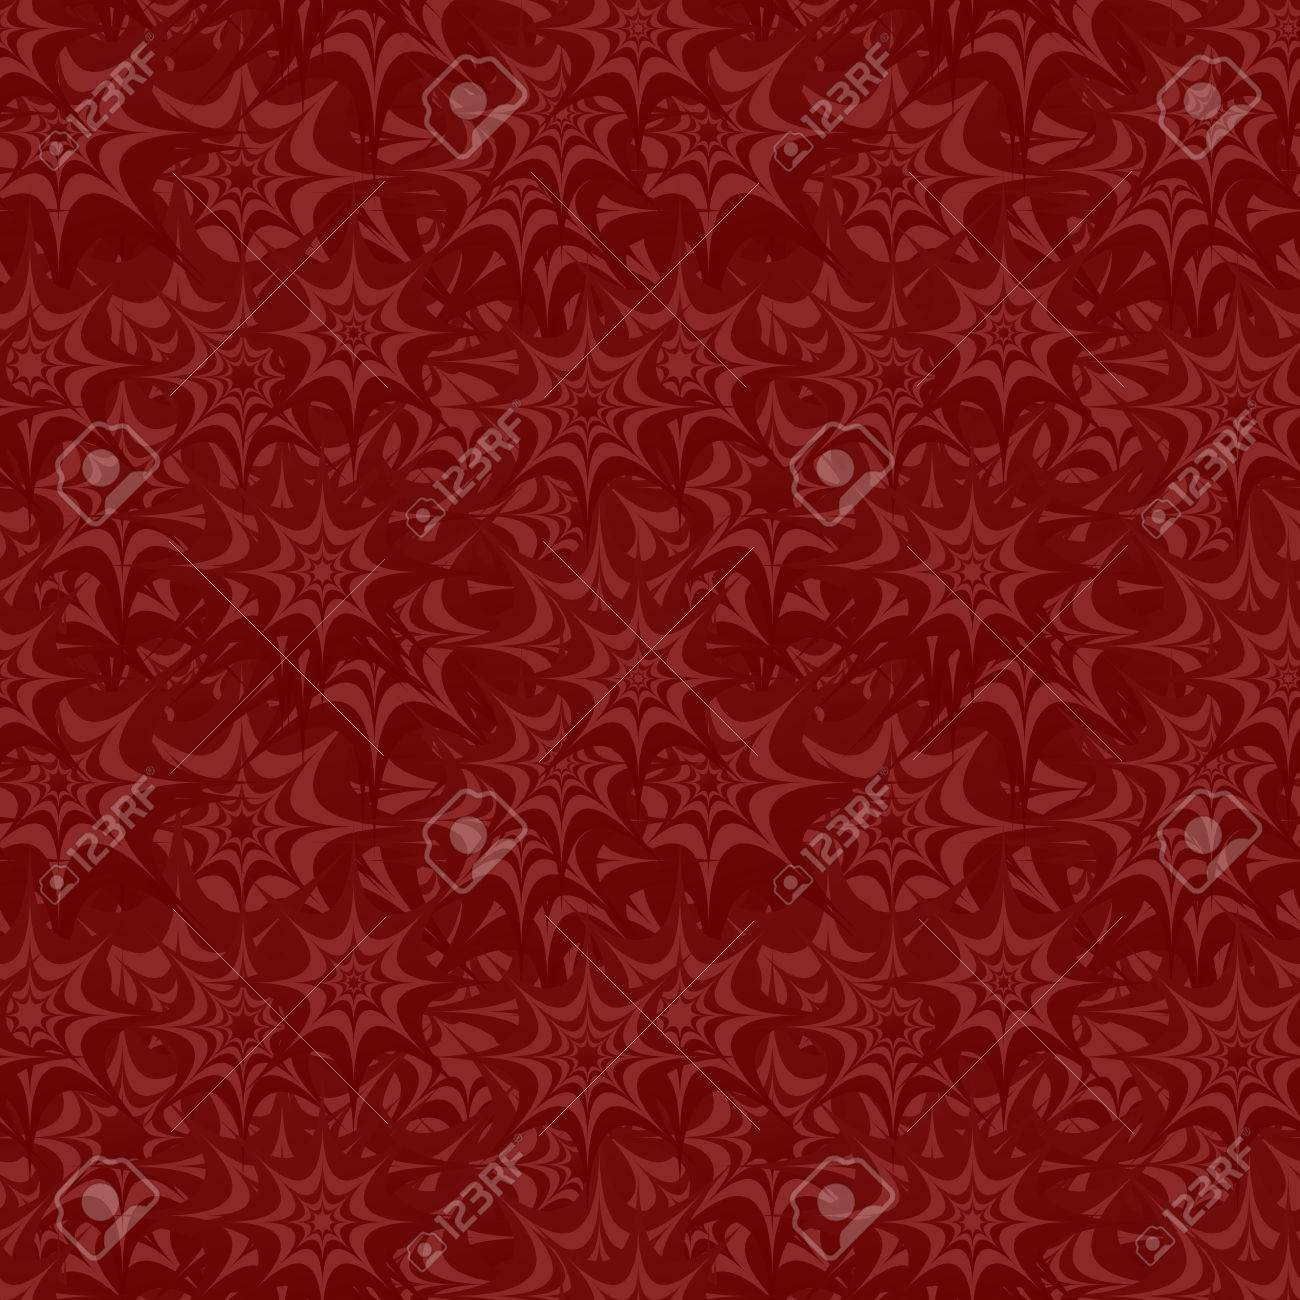 Maroon Seamless Star Pattern Design Vector Background Royalty Free Cliparts Vectors And Stock Illustration Image 47958785 Download 17,829 maroon background stock illustrations, vectors & clipart for free or amazingly low rates! maroon seamless star pattern design vector background